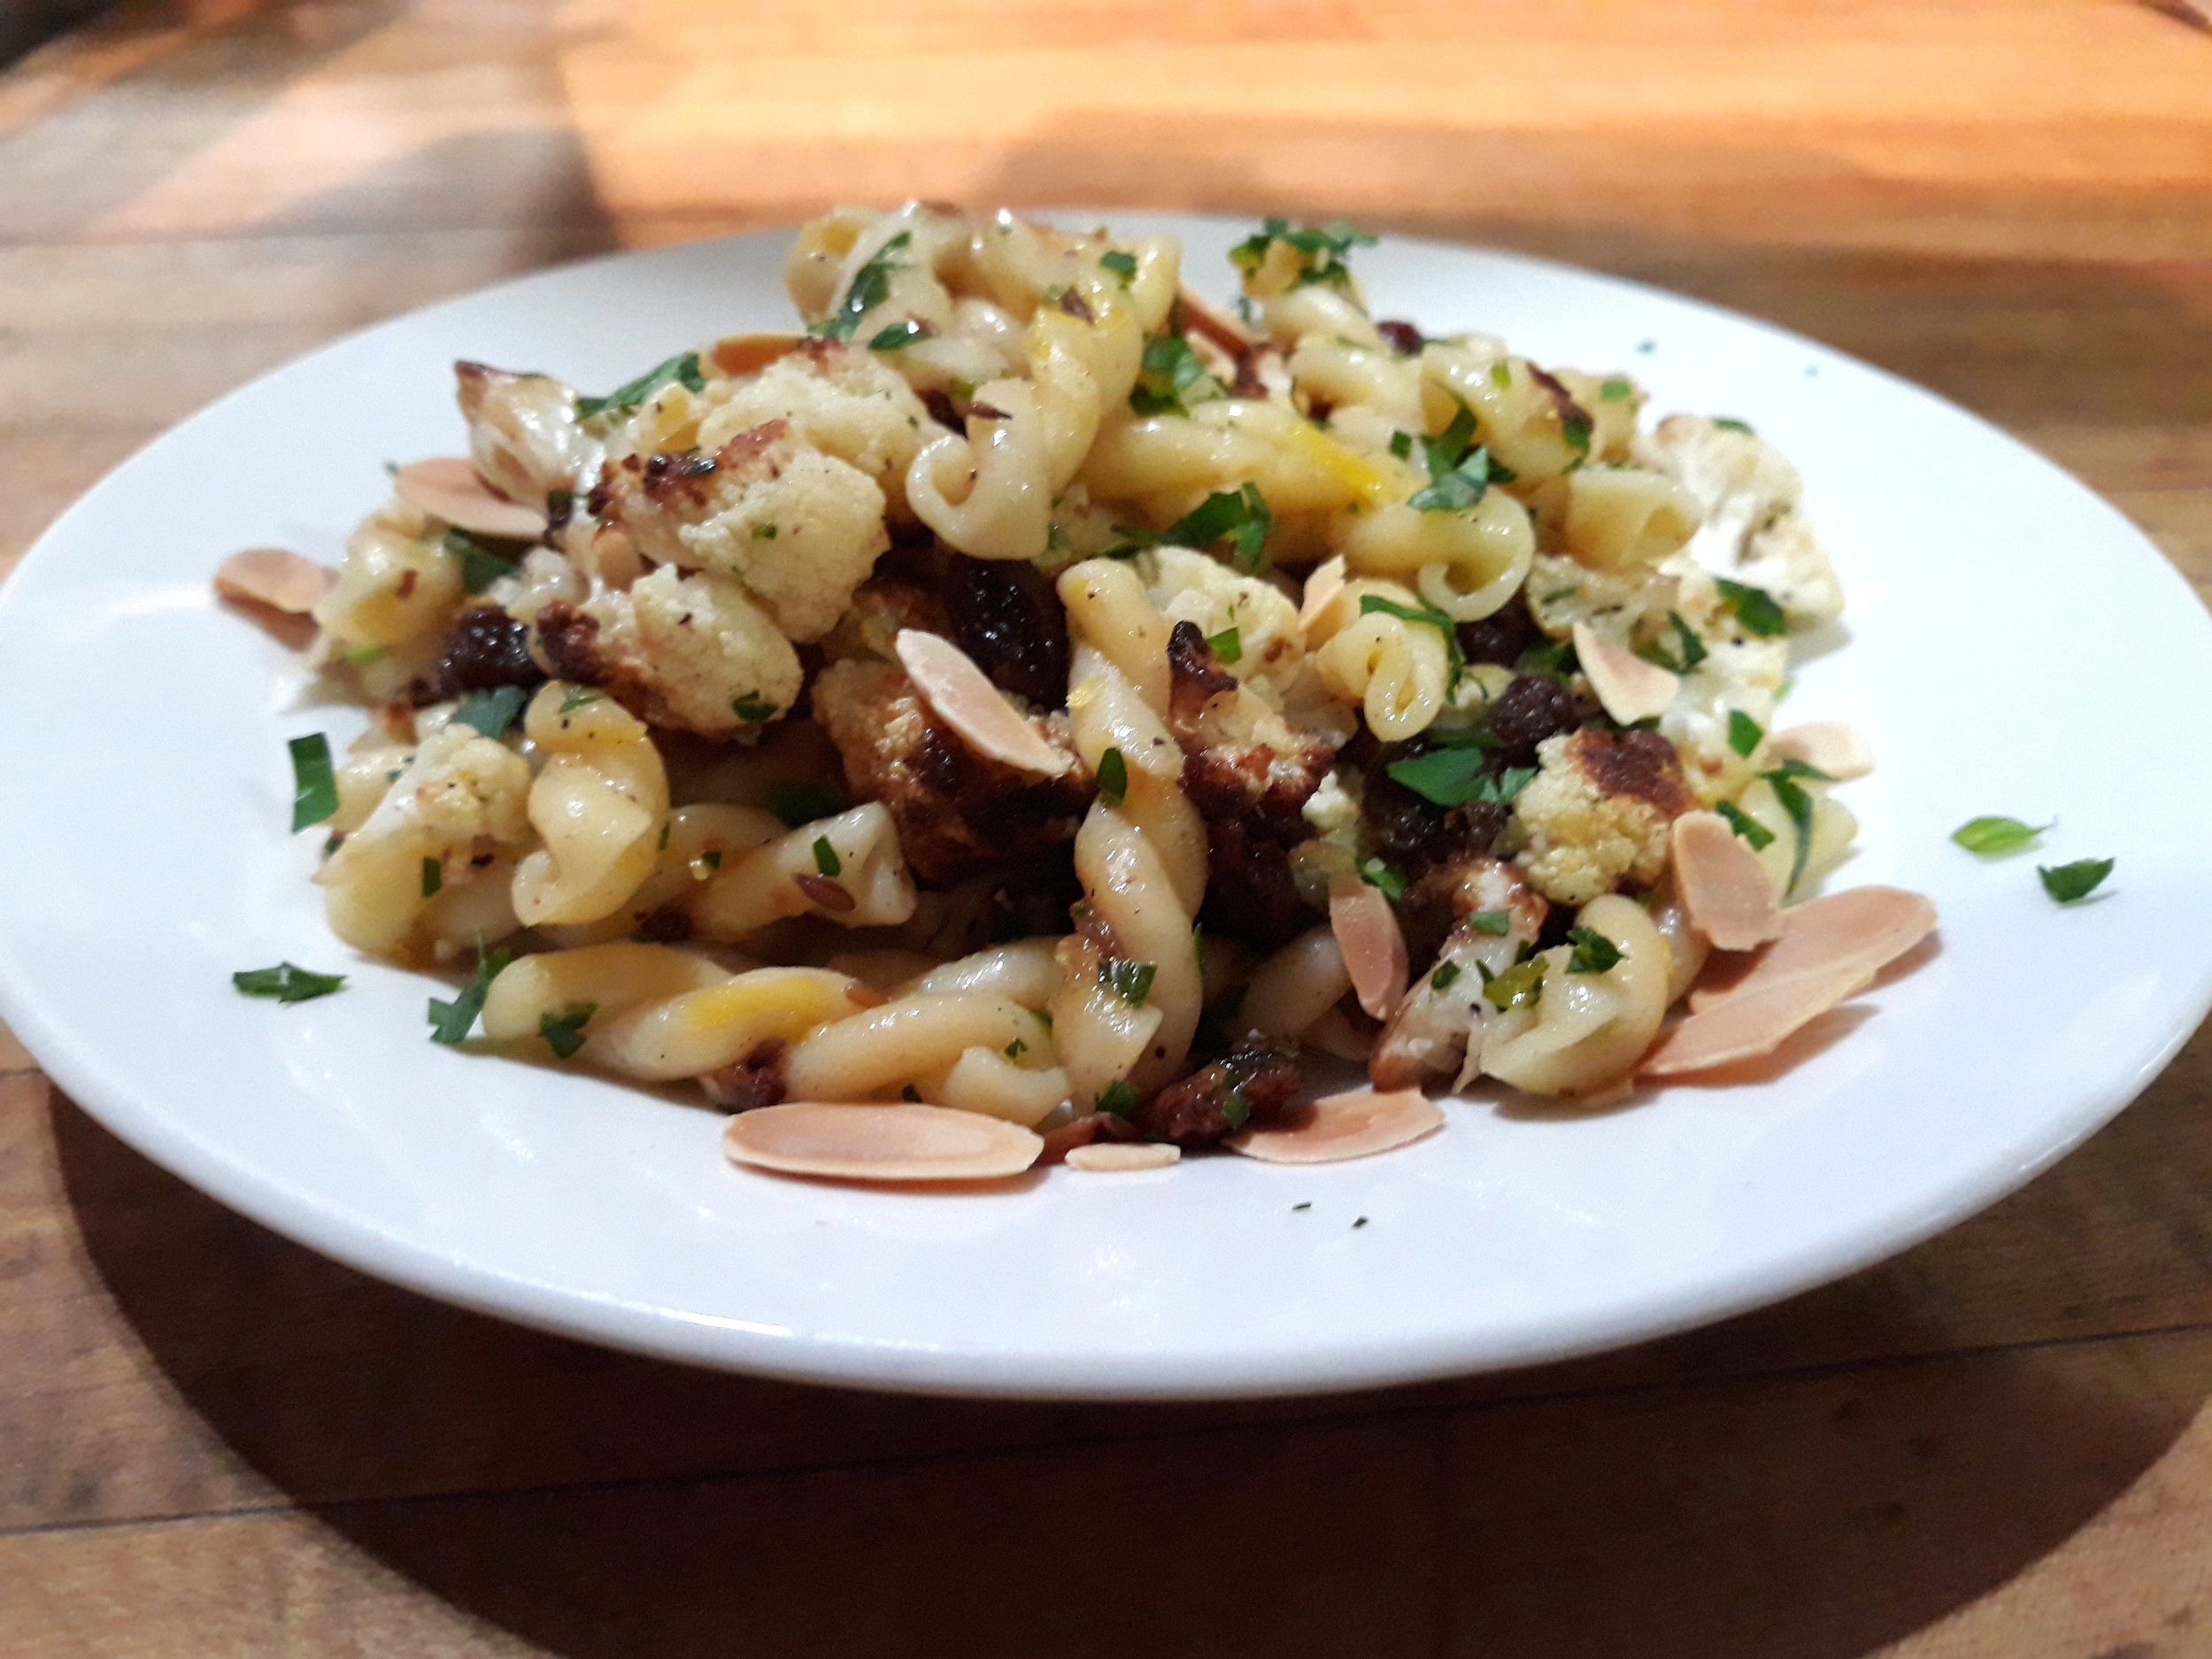 GEMELLI WITH ROASTED GARLIC & CAULIFLOWER